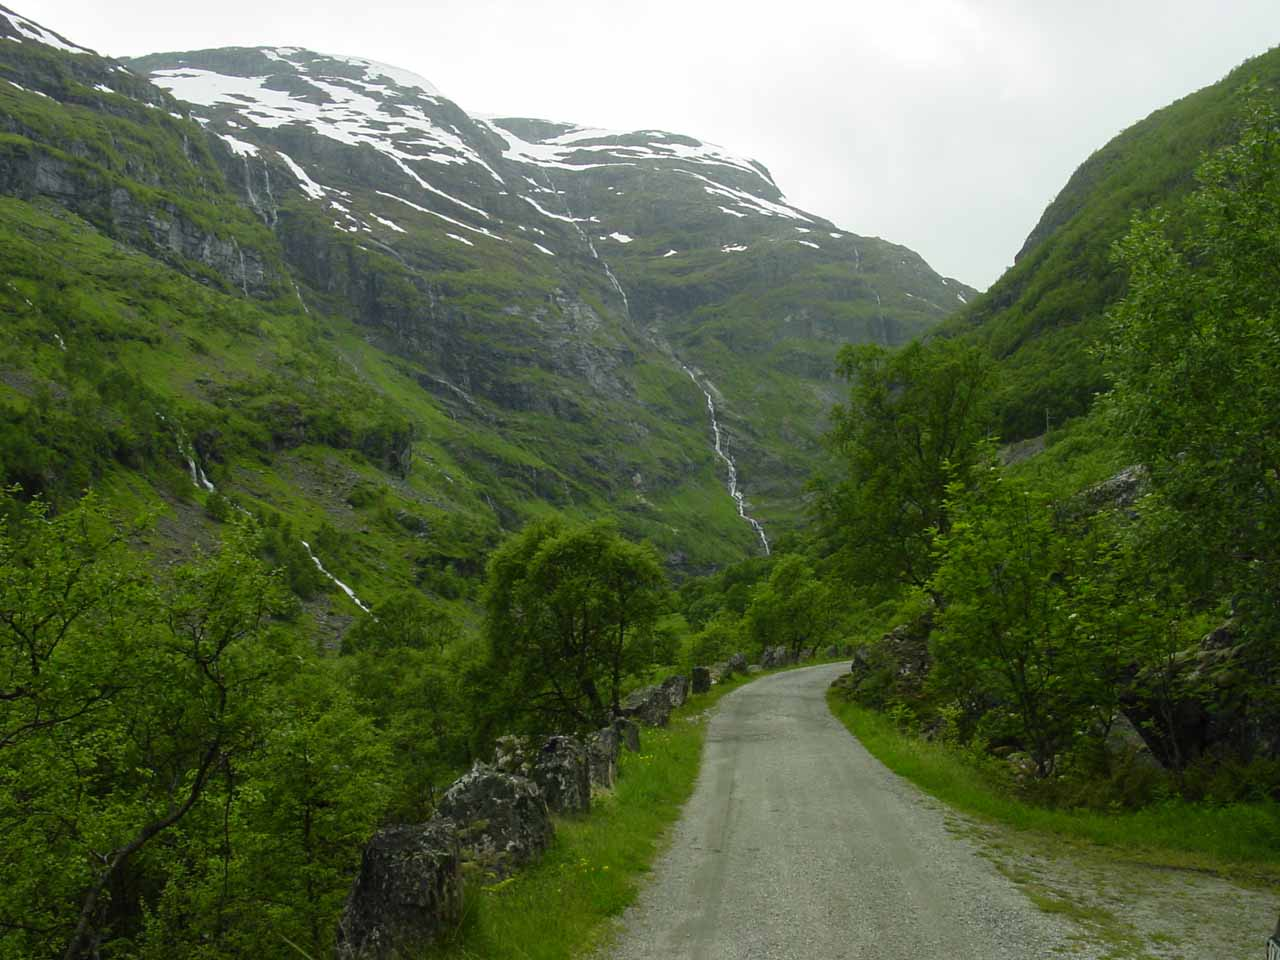 Driving the very narrow unpaved road in Flamsdalen near the Blomheller Station